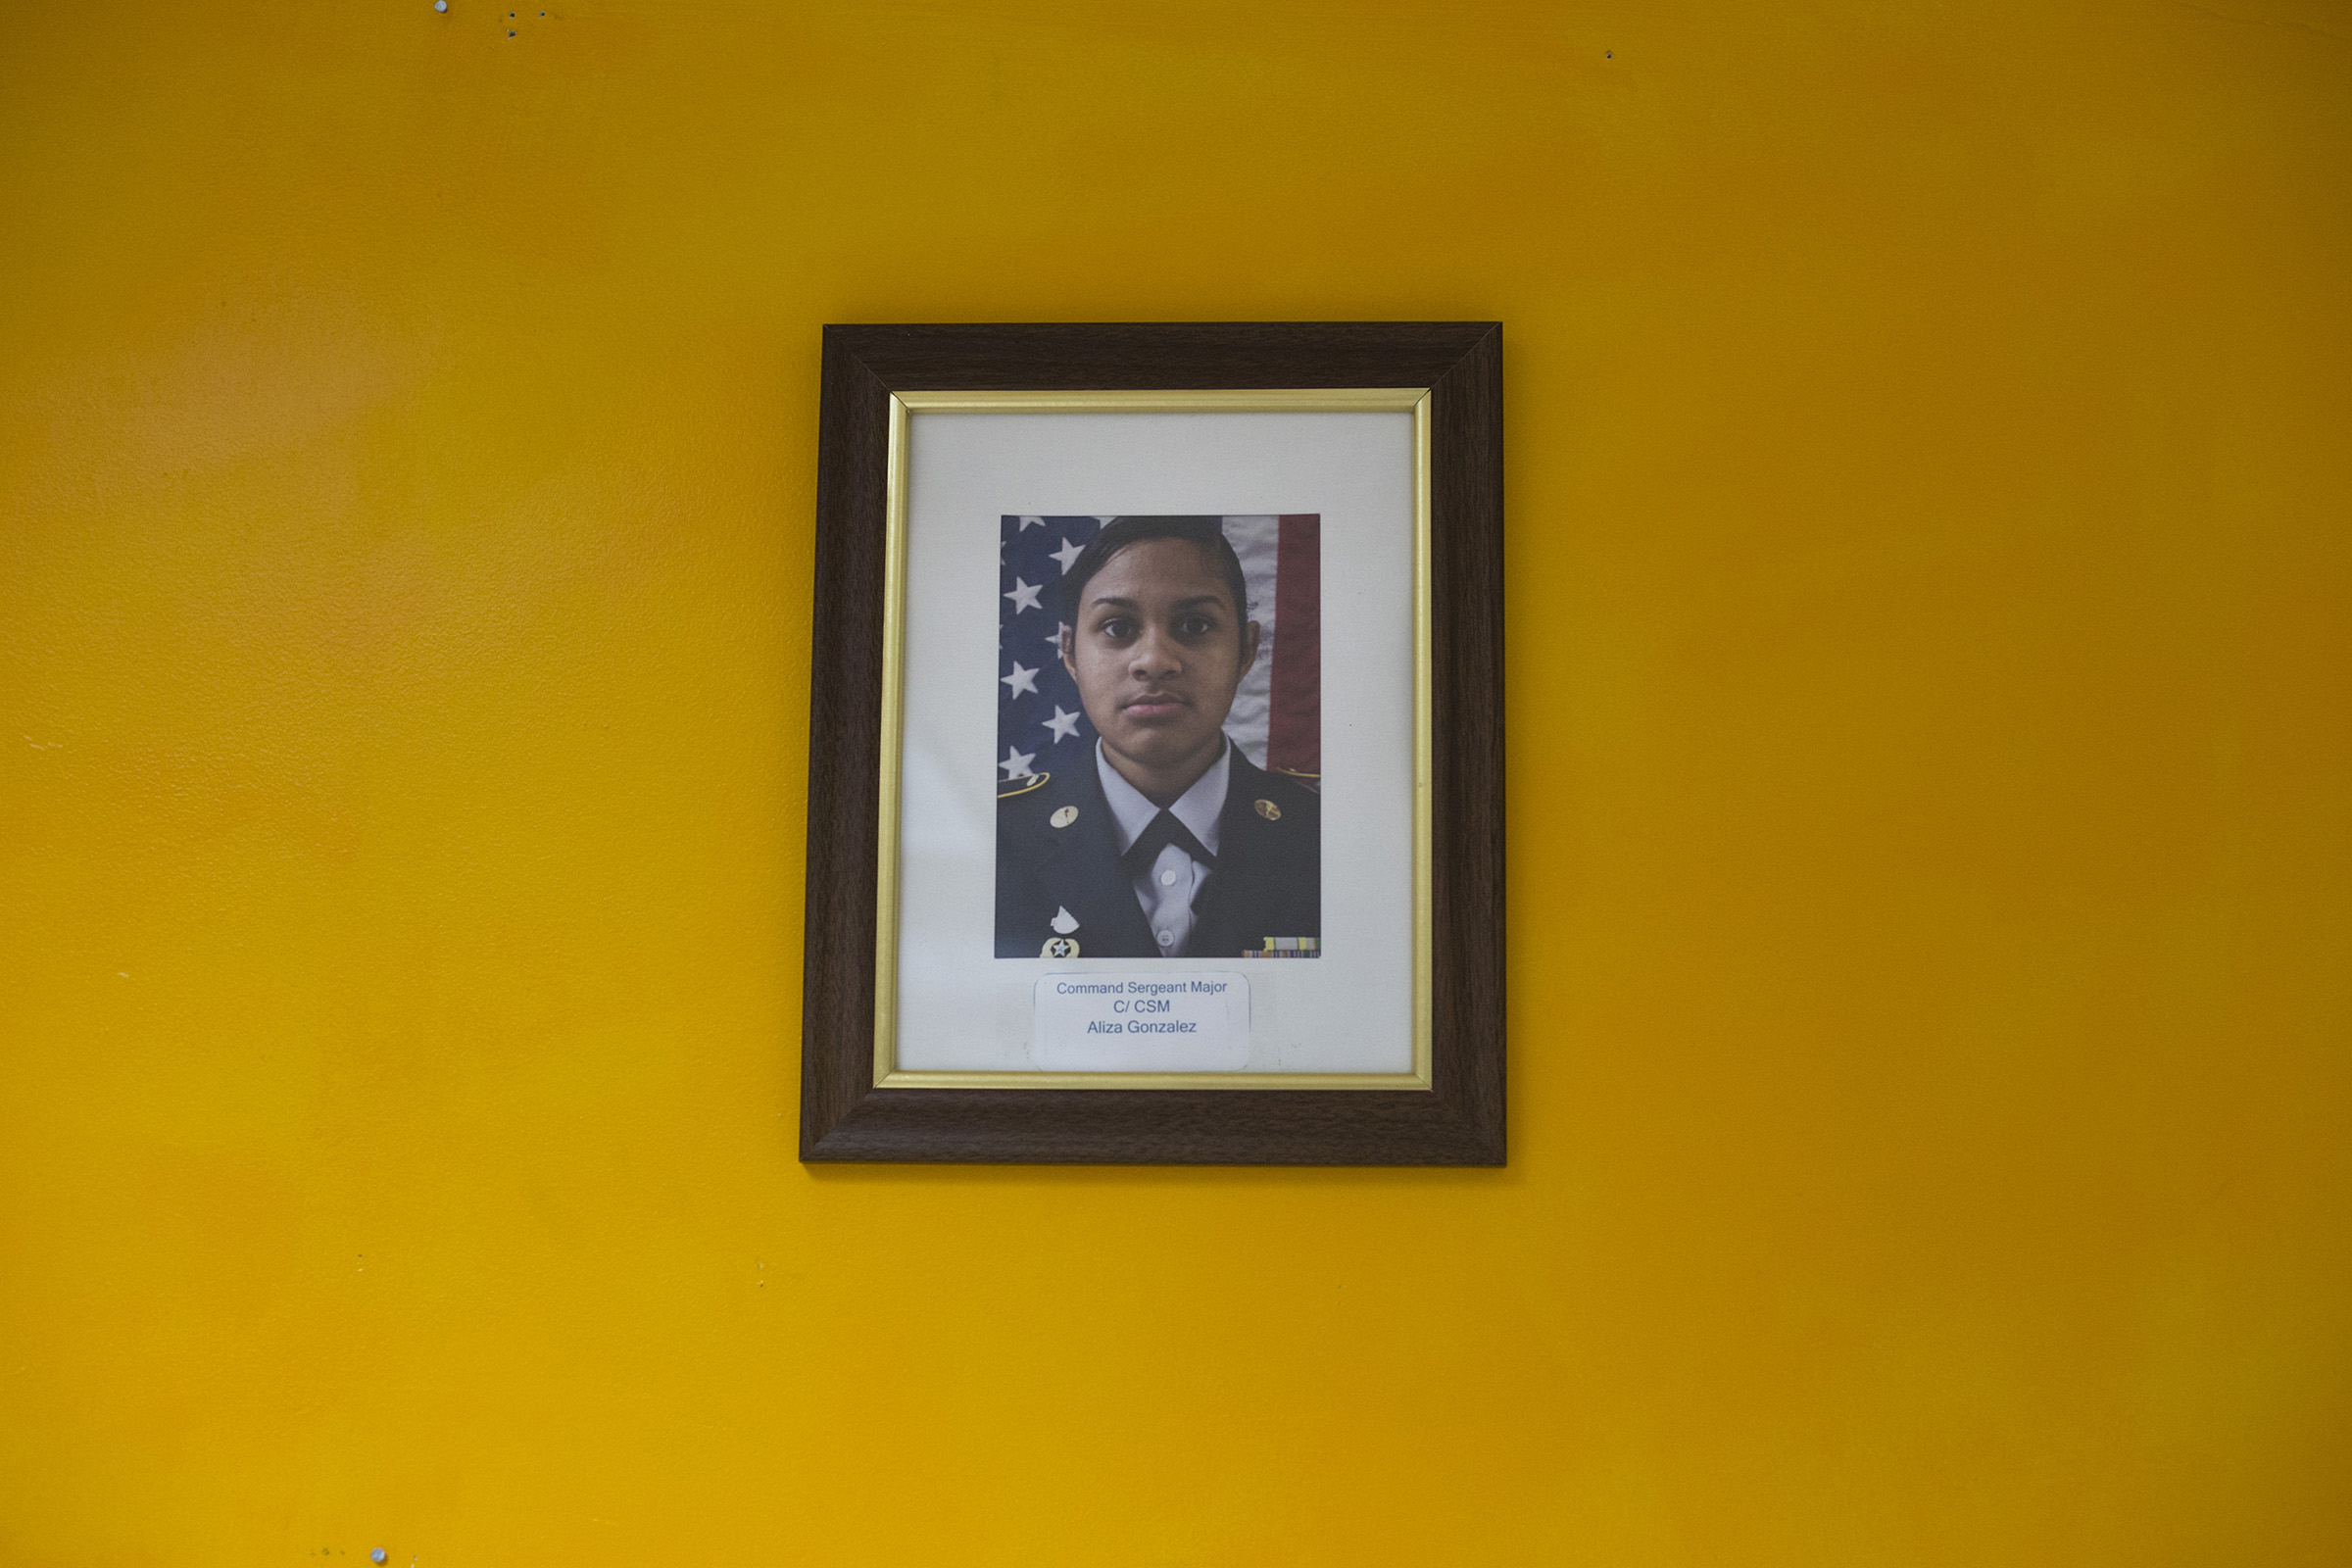 A single photograph featuring Command Sergeant Major Aliza Gonzalez, 17, hangs on the wall in a JROTC classroom in Springfield, Mass., on Monday, September, 11, 2017. (Photo by Brittany Greeson)